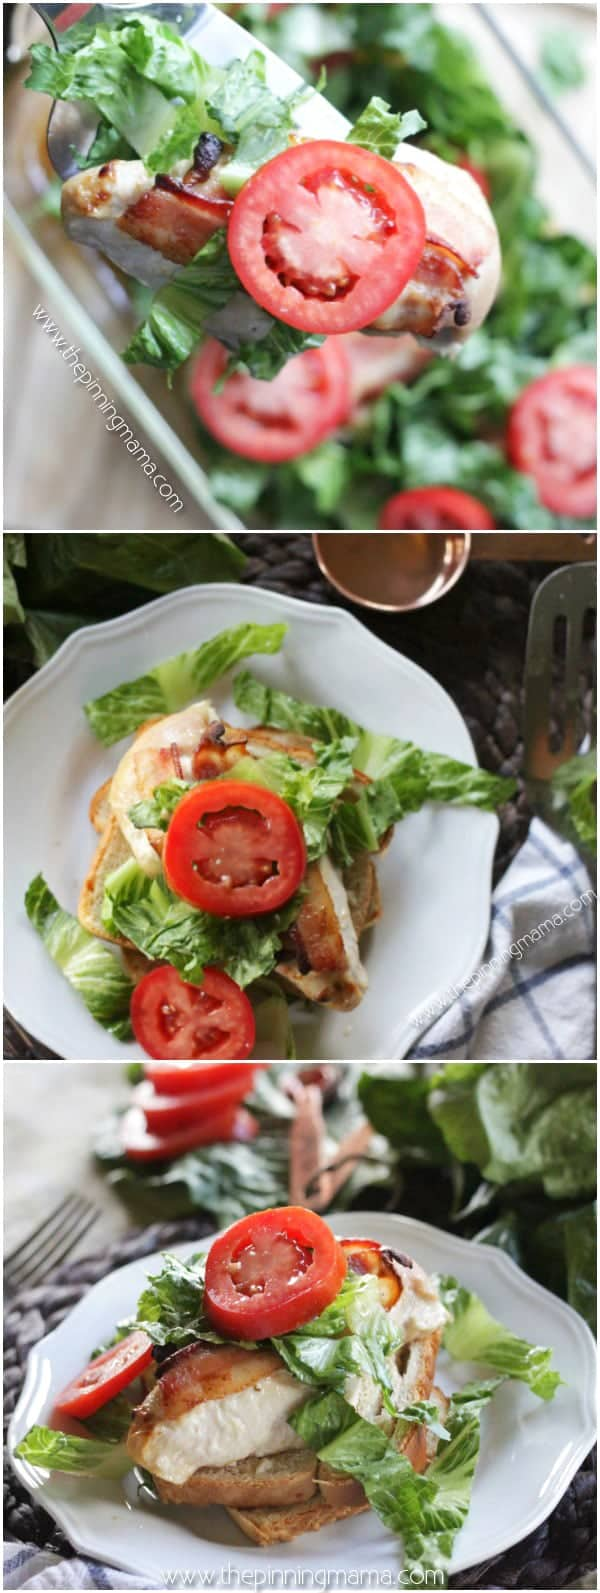 Quick + Easy + Healthy = Best dinner recipe EVER!!! BLT Chicken Bake Recipe - Quick and easy chicken dinner, so delicious AND Paleo + Whole30 compliant recipe. Tender chicken, rich bacon, crisp lettuce, and thick juicy tomatoes, it doesn't get much better than that! I love it when I can find quick recipes because so many seem to take hours to get onto the table! Dairy free, grain free low carb dinner idea!